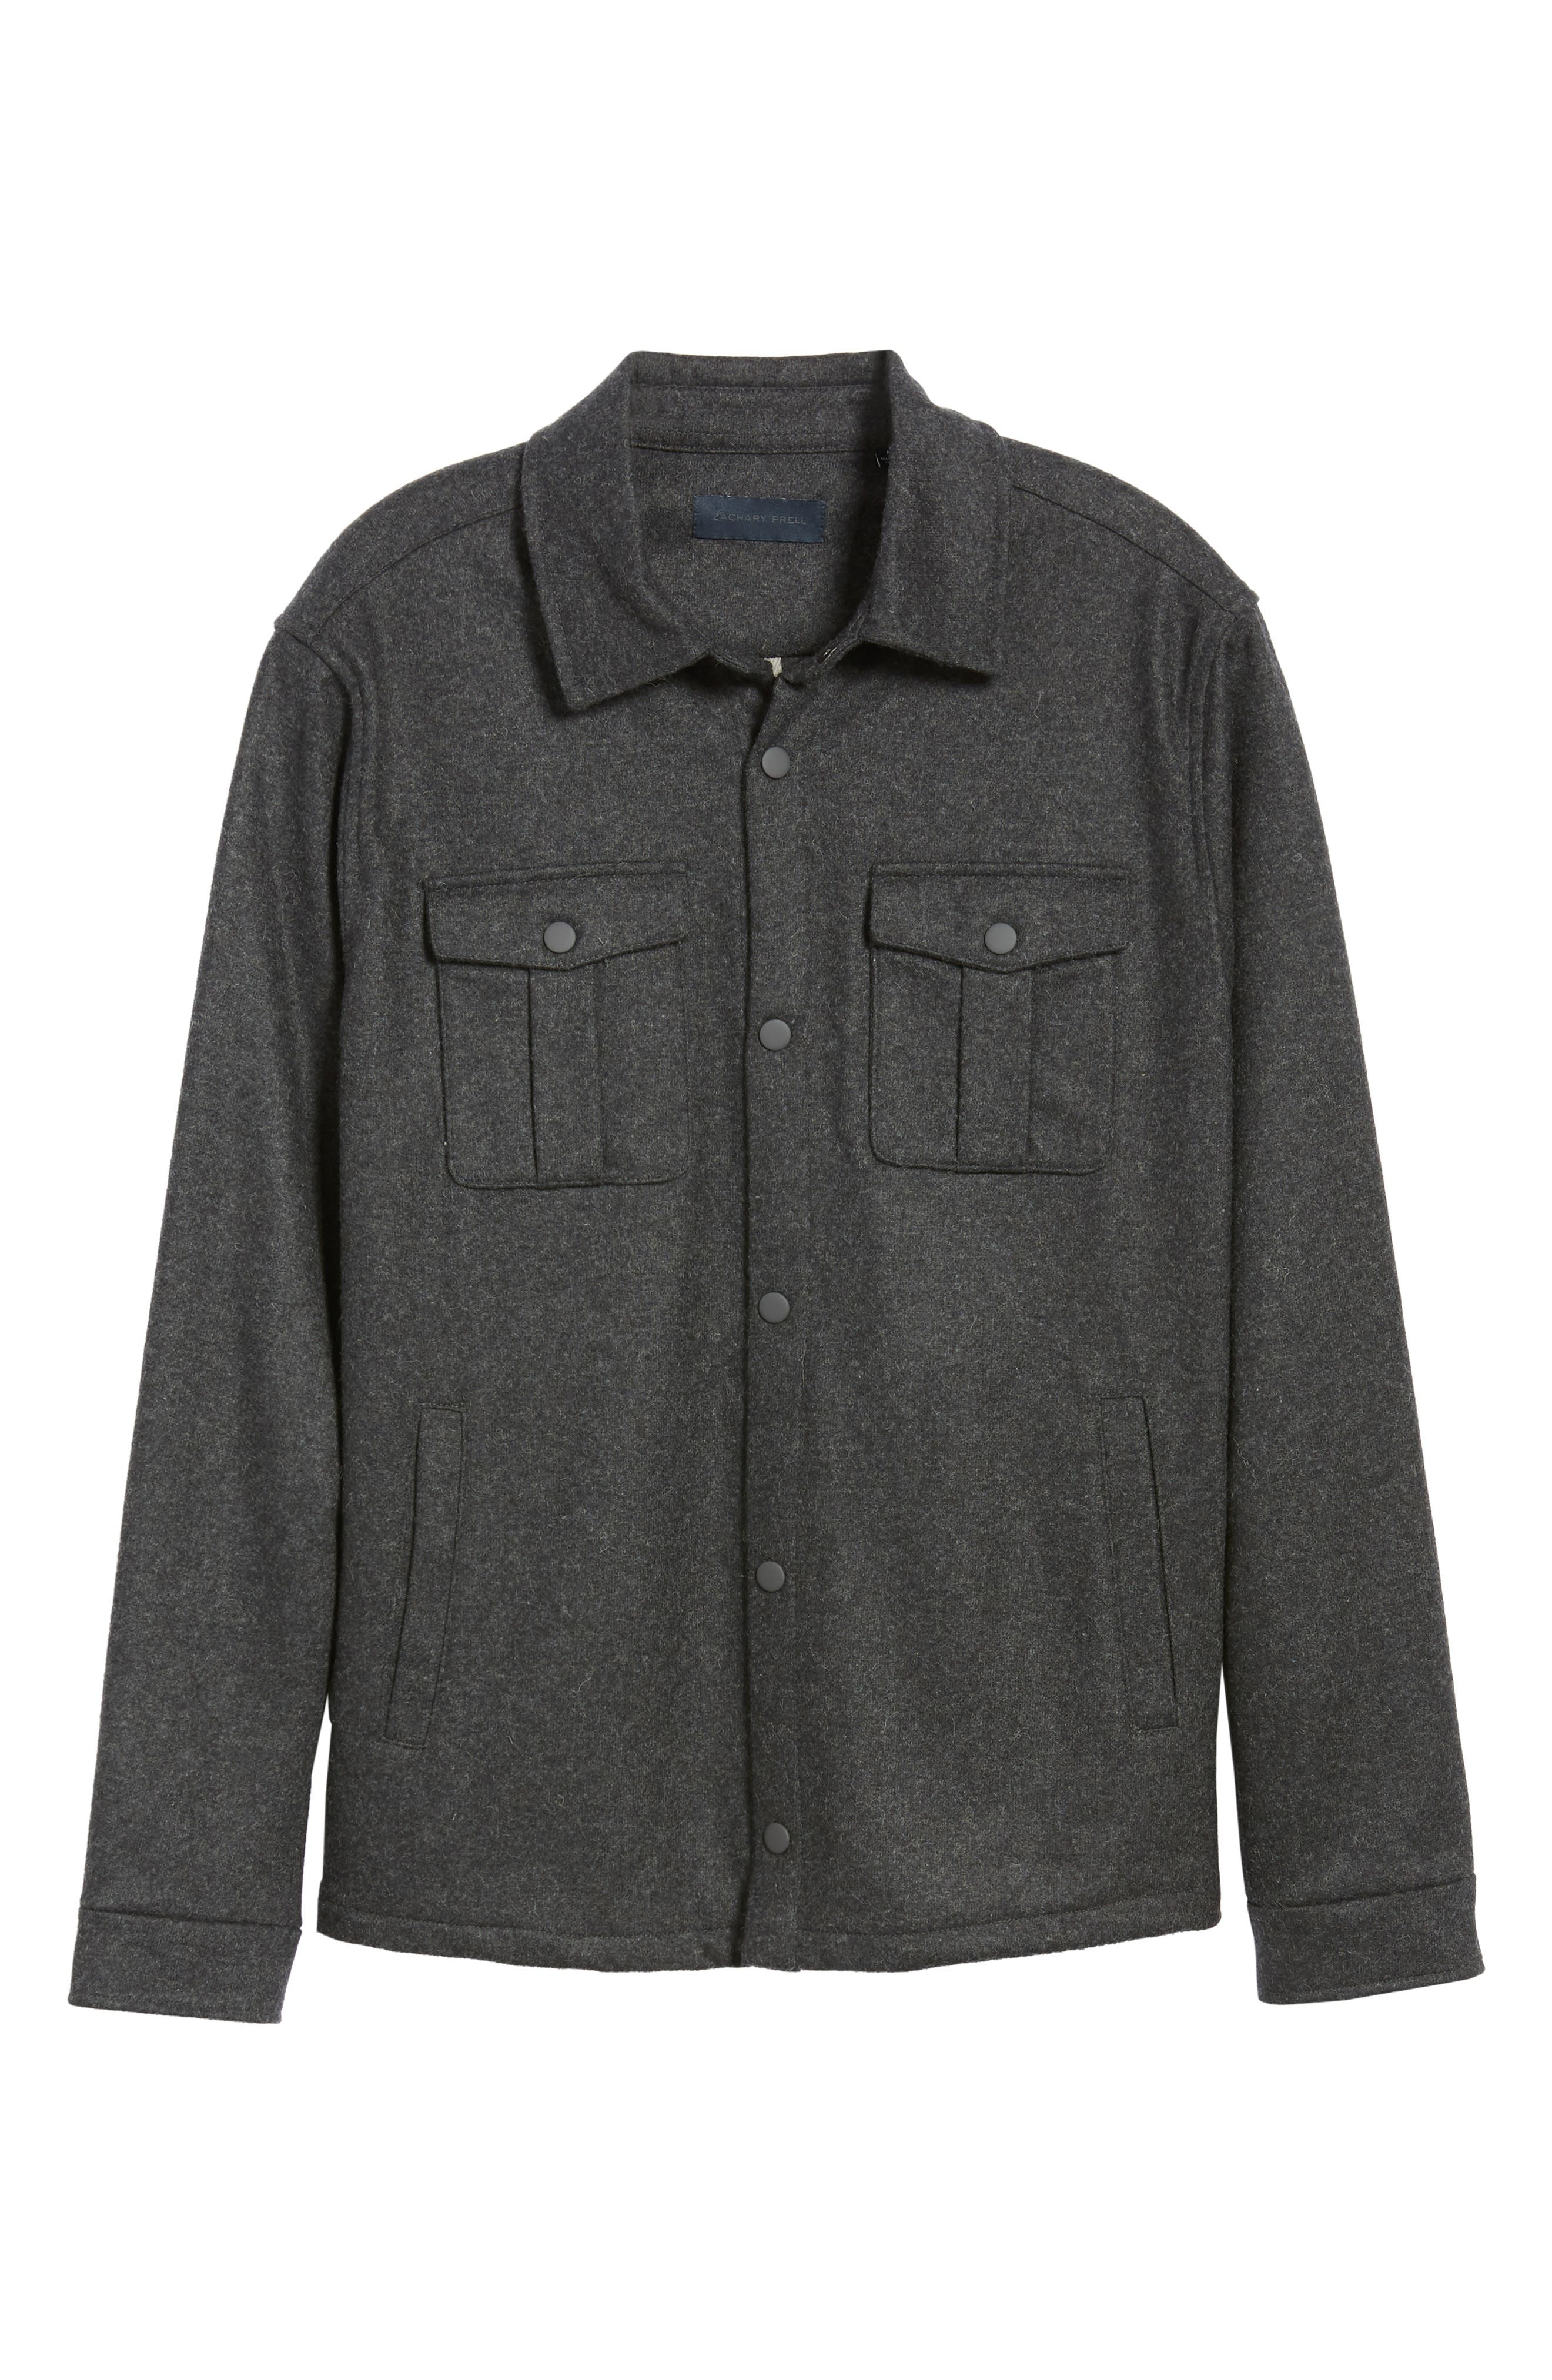 Seymour Regular Fit Wool Blend Shirt Jacket,                             Alternate thumbnail 6, color,                             DARK GREY